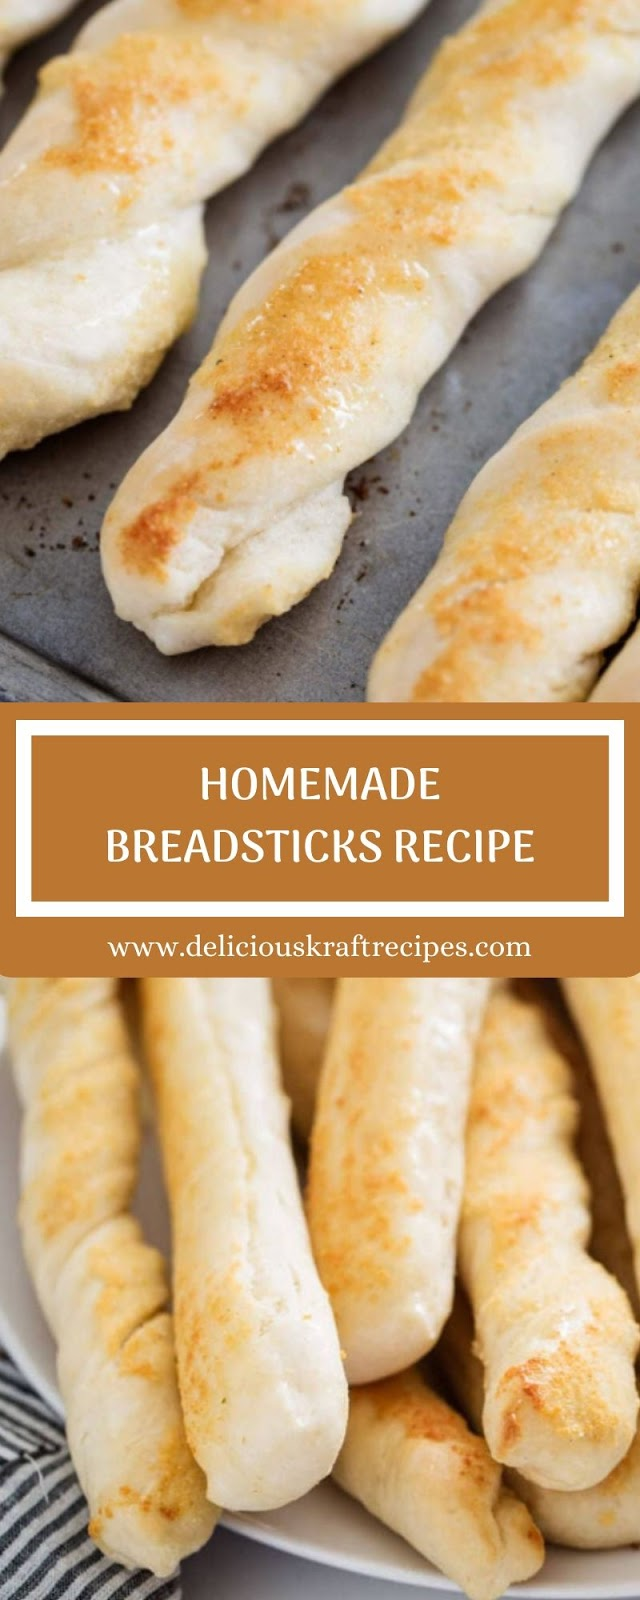 HOMEMADE BREADSTICKS RECIPE